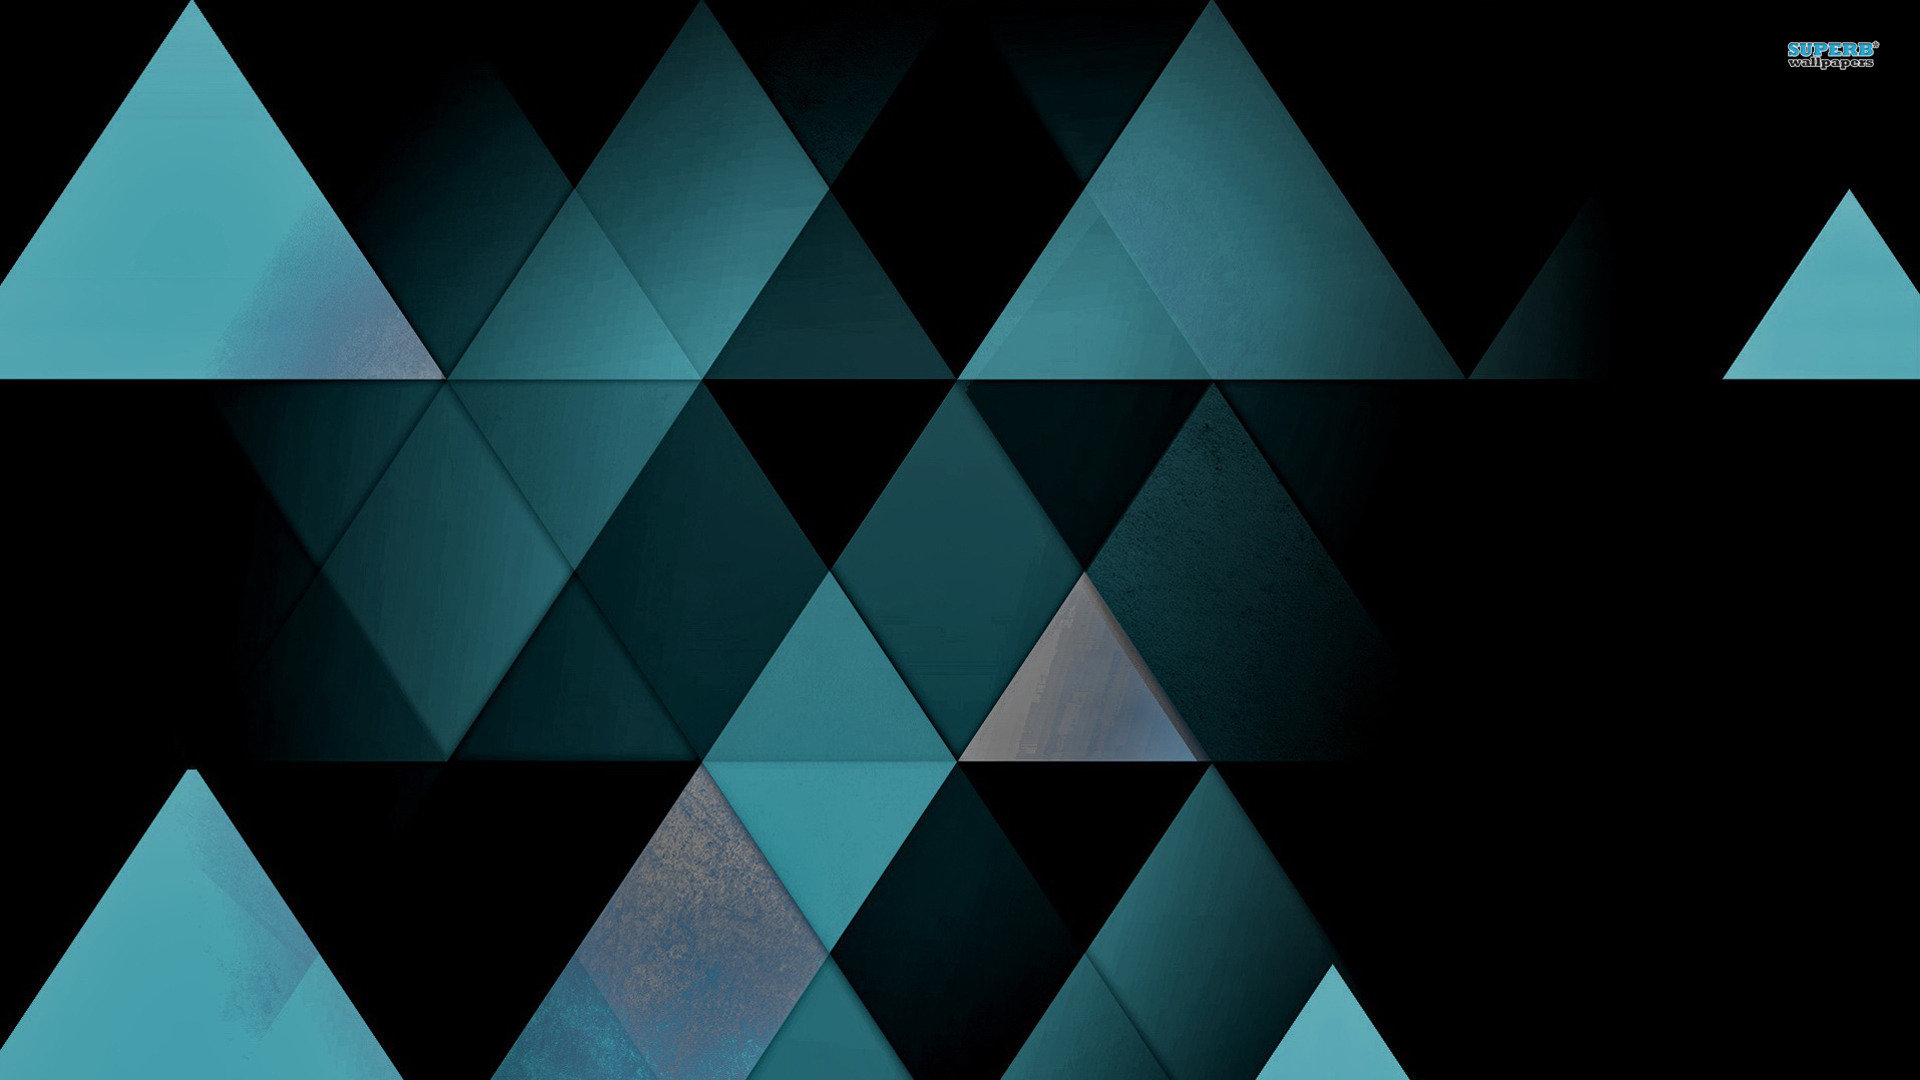 triangle abstract wallpapers - photo #18